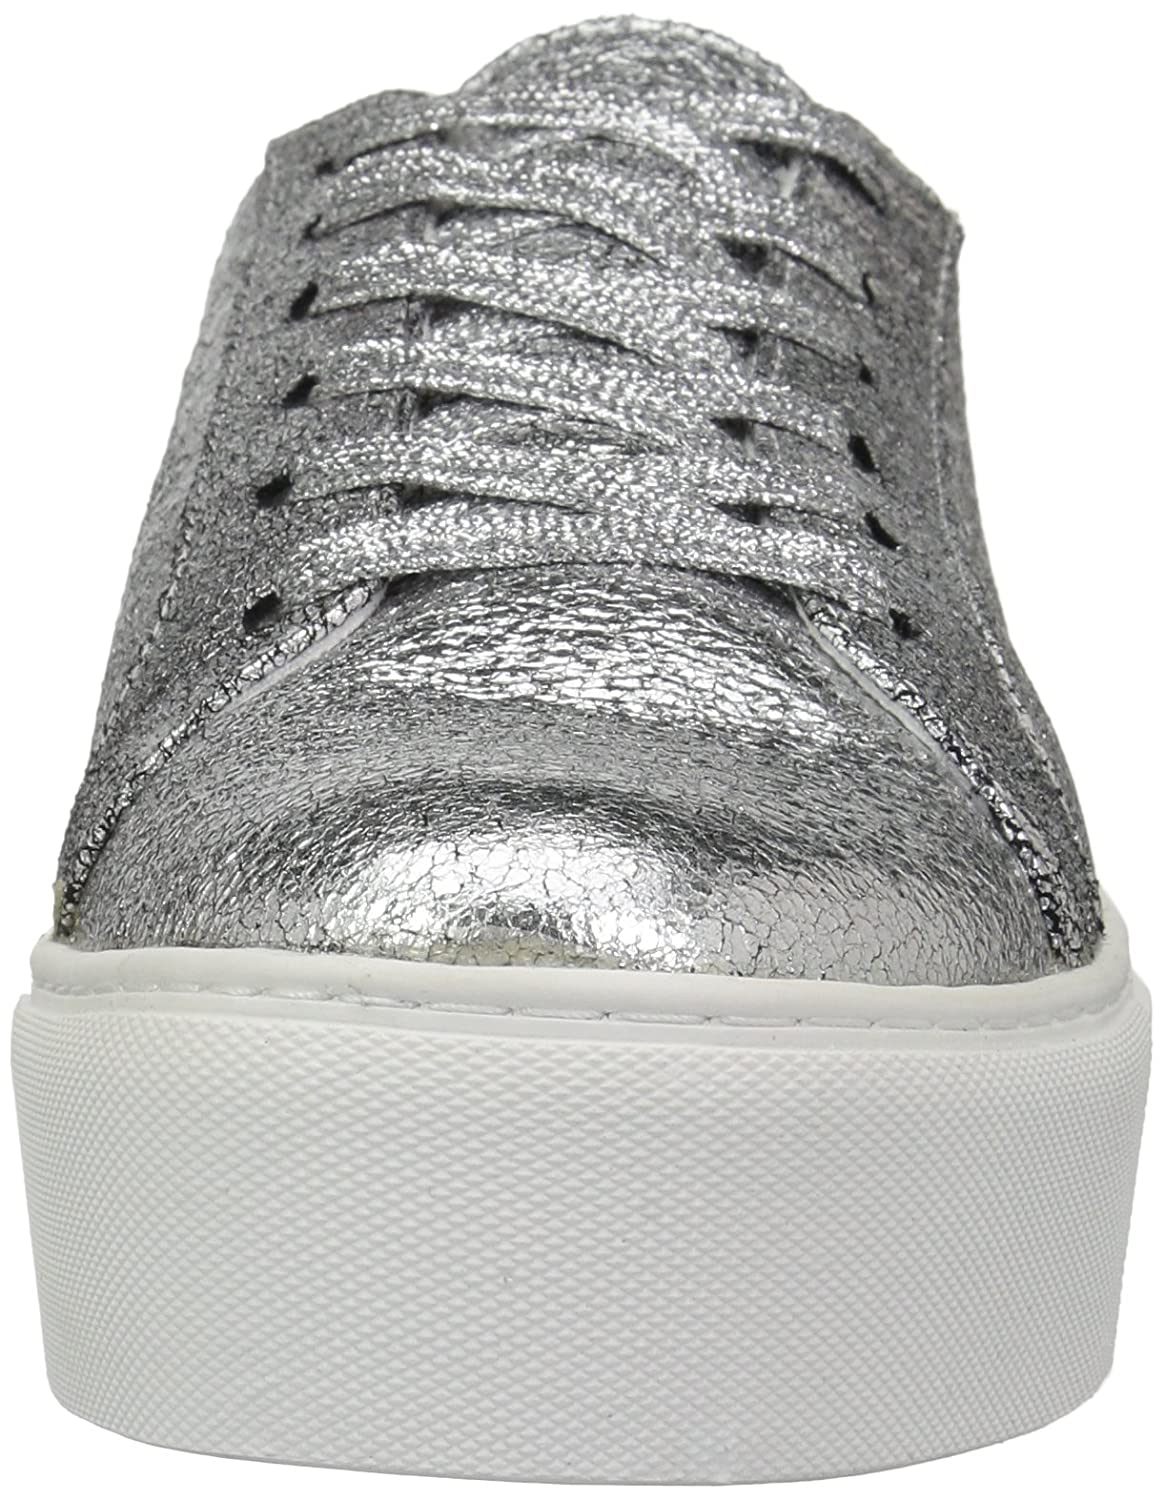 f4a92e2dd9f ... Kenneth Cole New Lace York Women s Abbey Platform Lace New up  Metallic-Techni-Cole ...